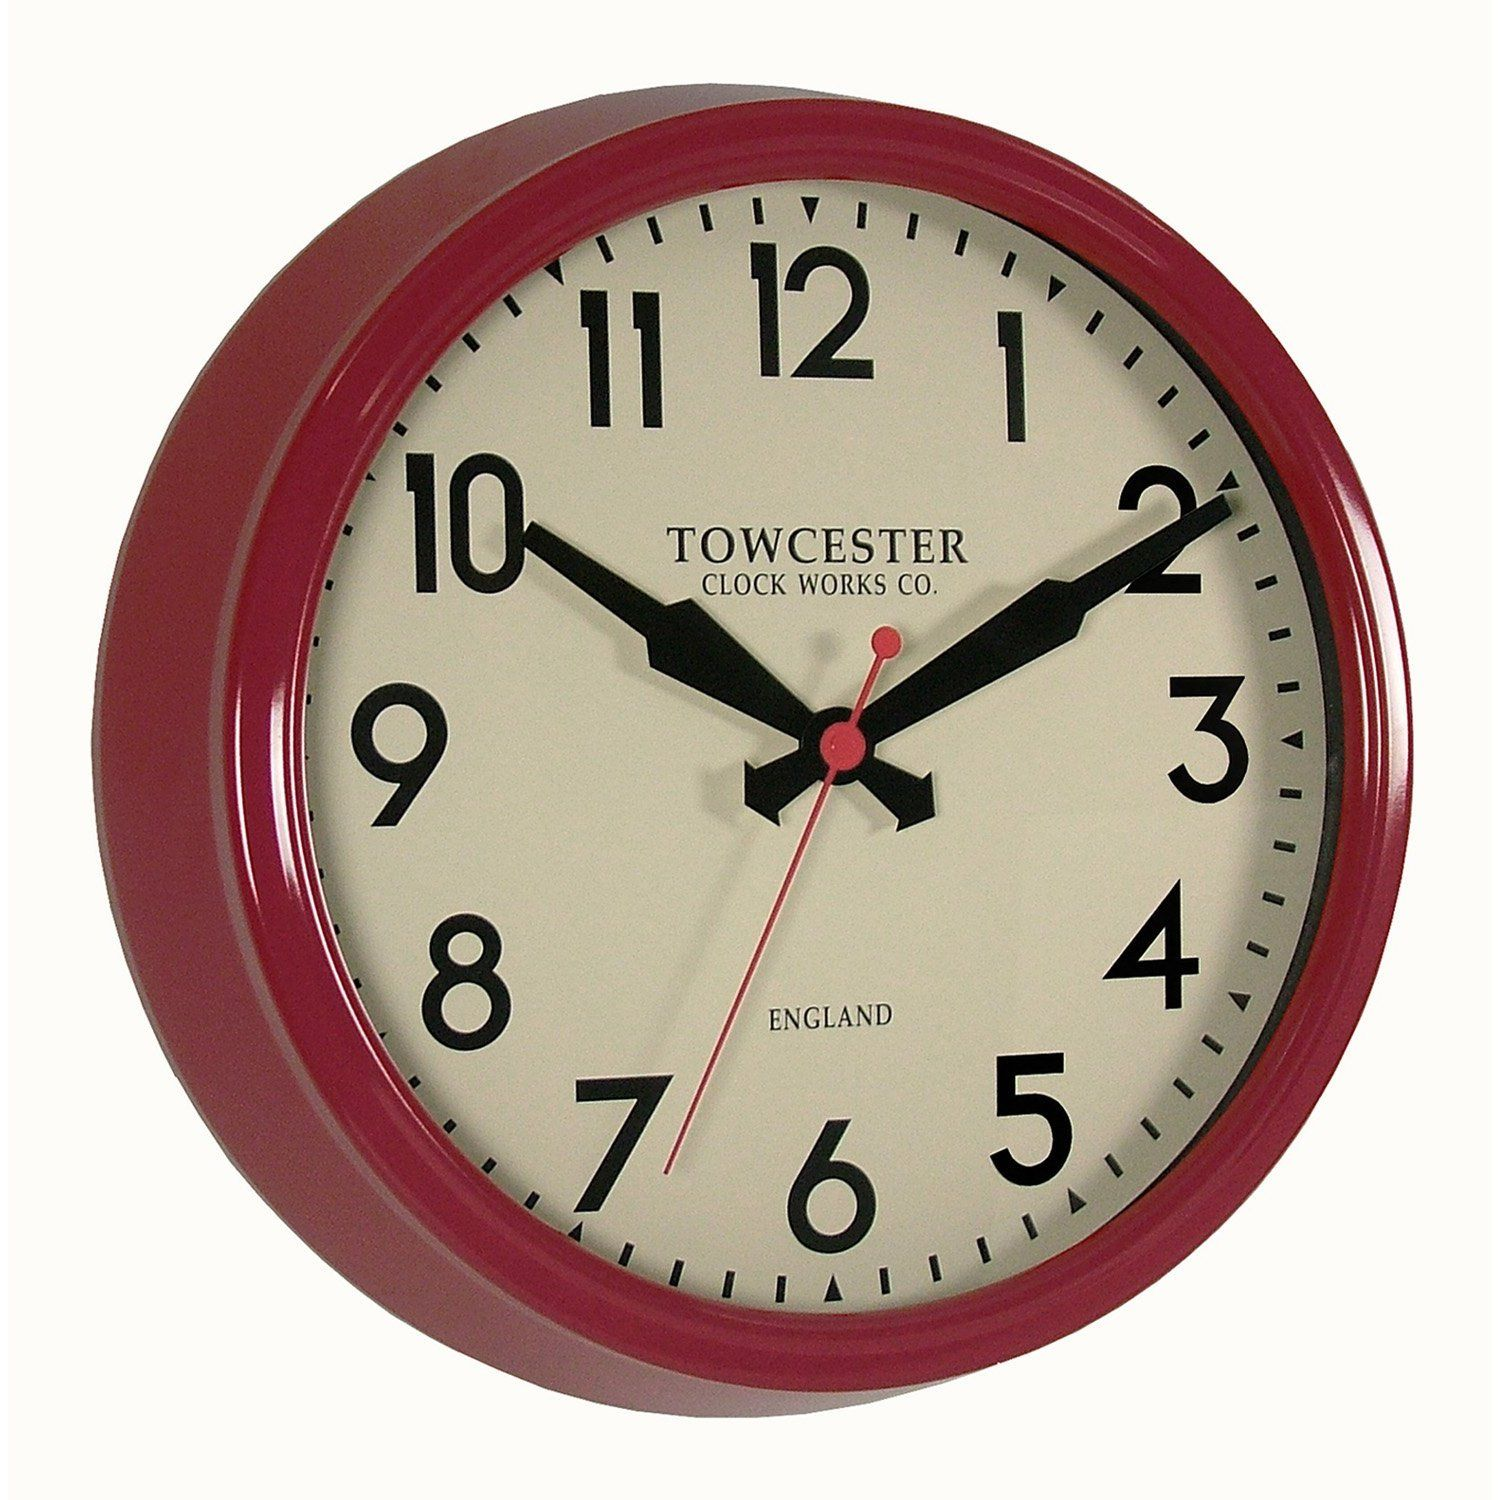 Acctim 26914 fenchurch wall clock red amazon kitchen silver retro fenchurch and edgeware road acctim wall clock amipublicfo Choice Image